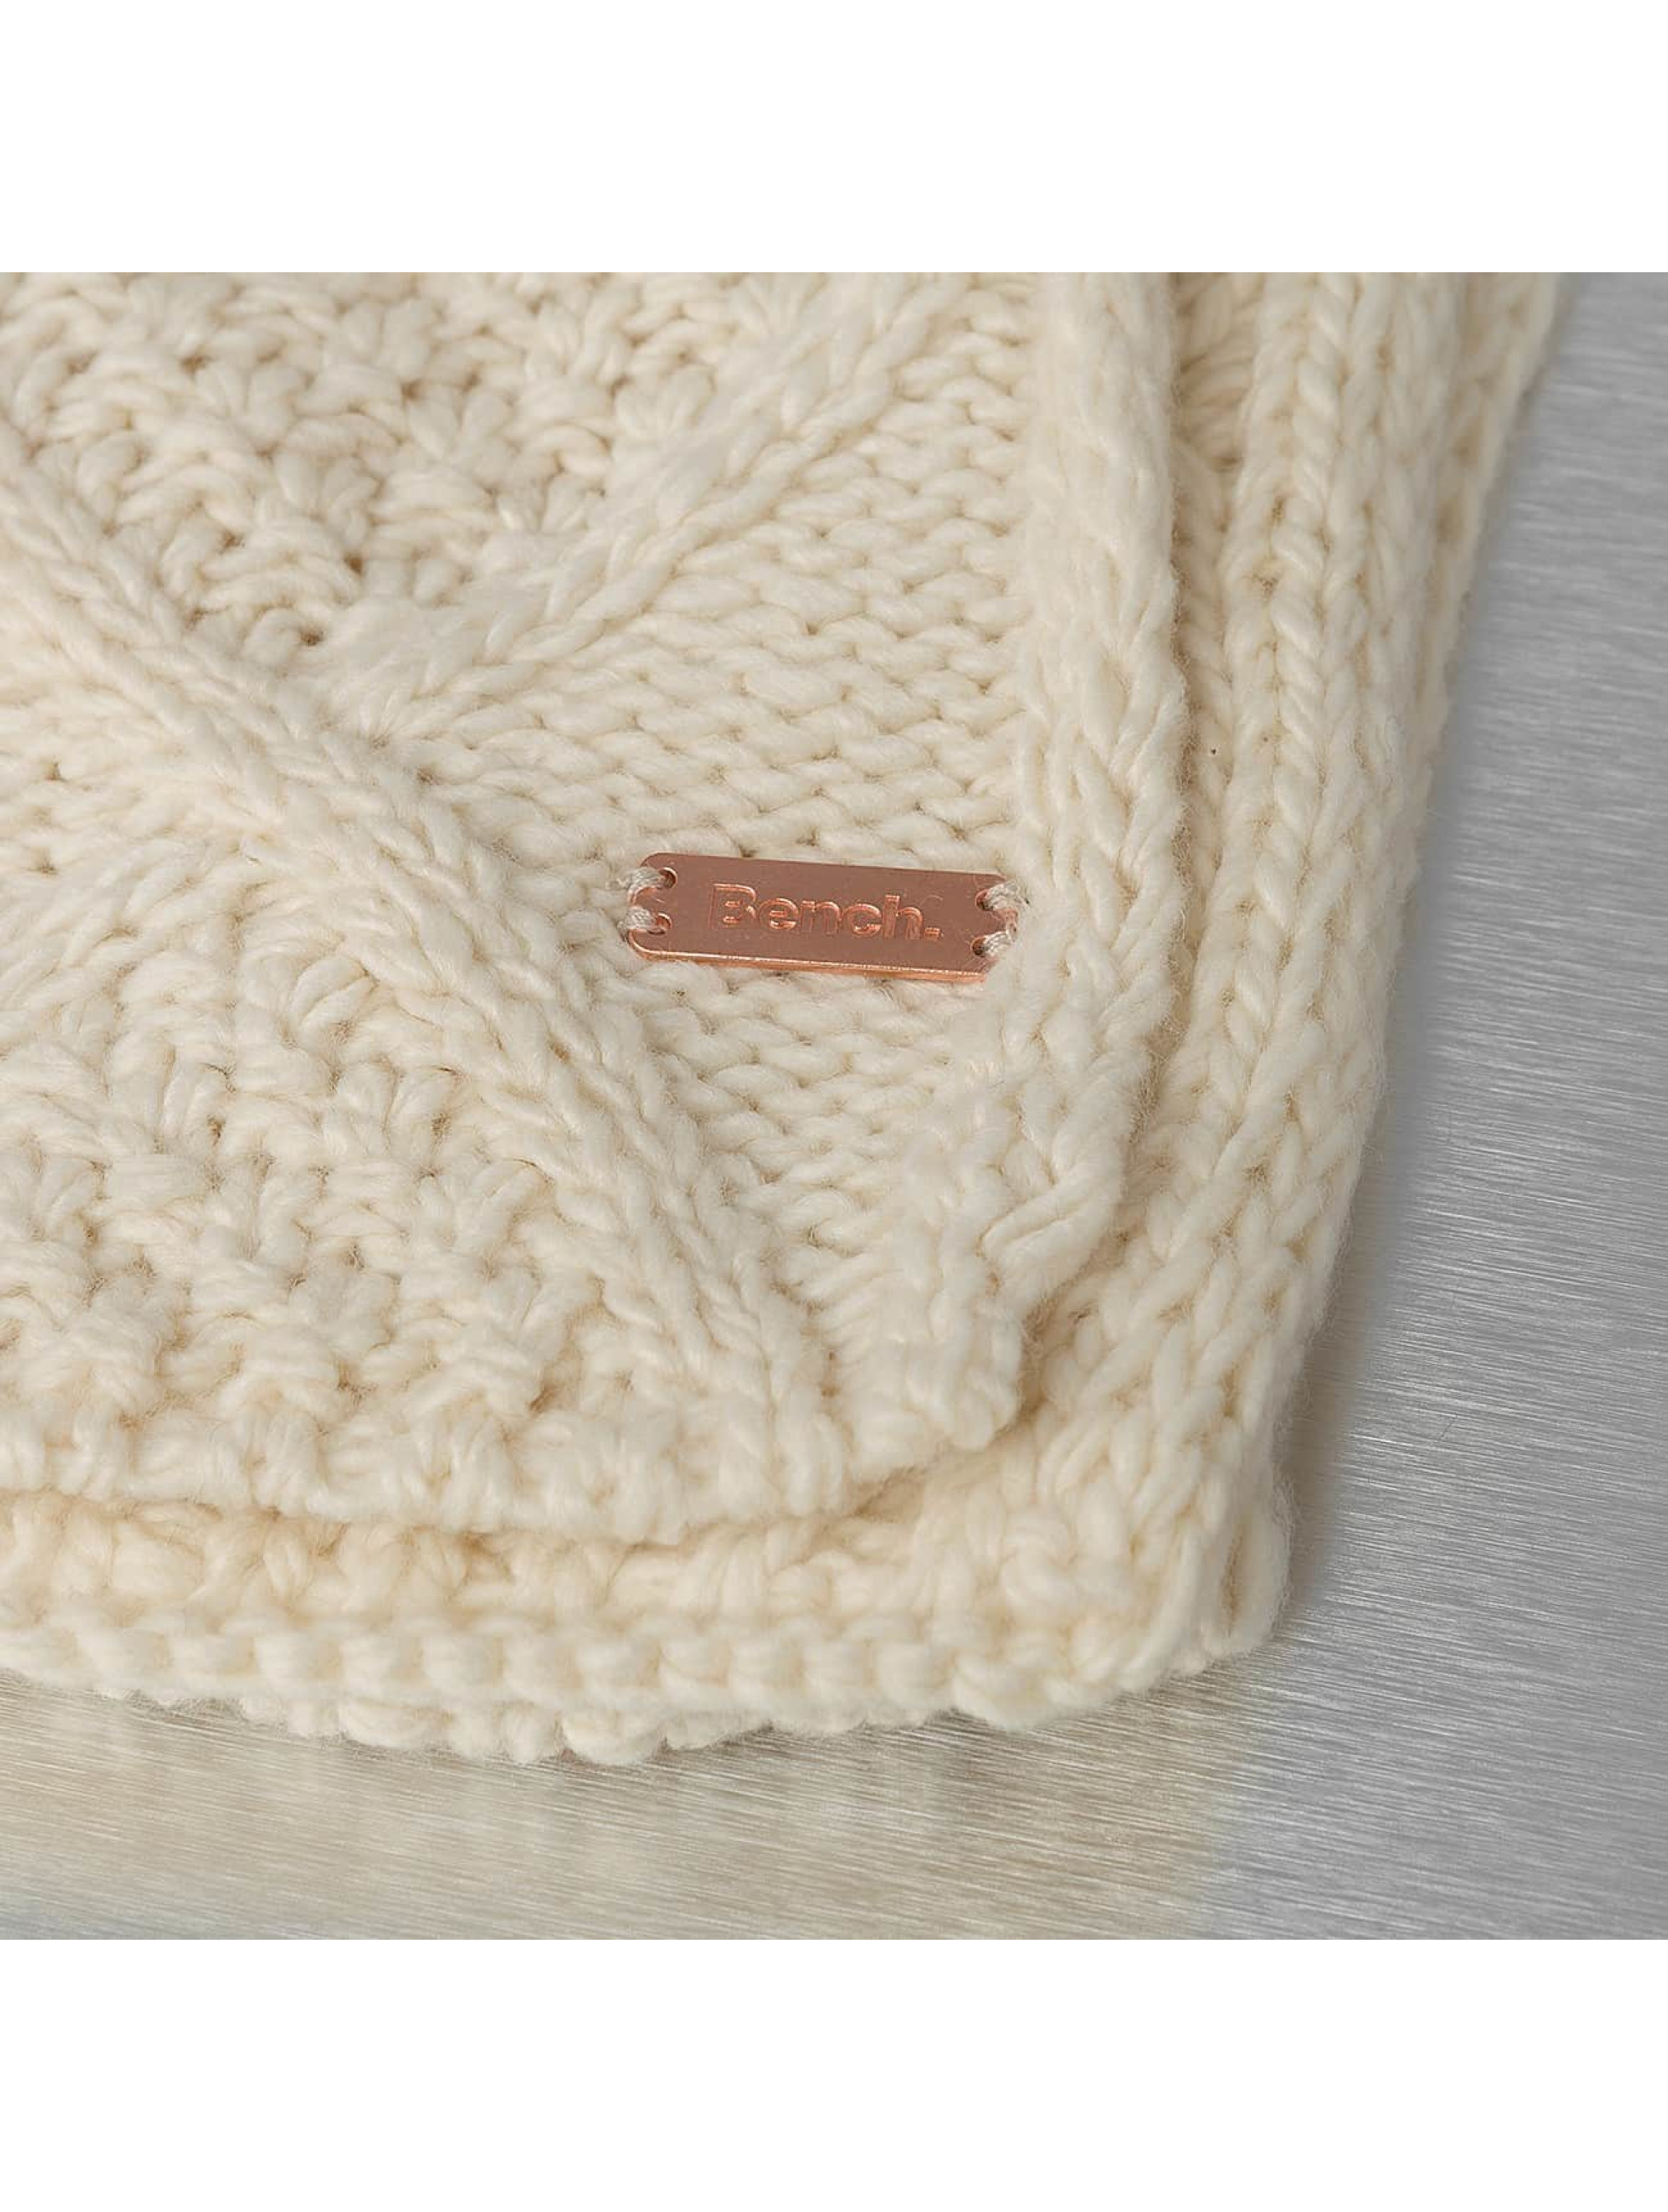 Bench Scarve Careen Cable Knit beige